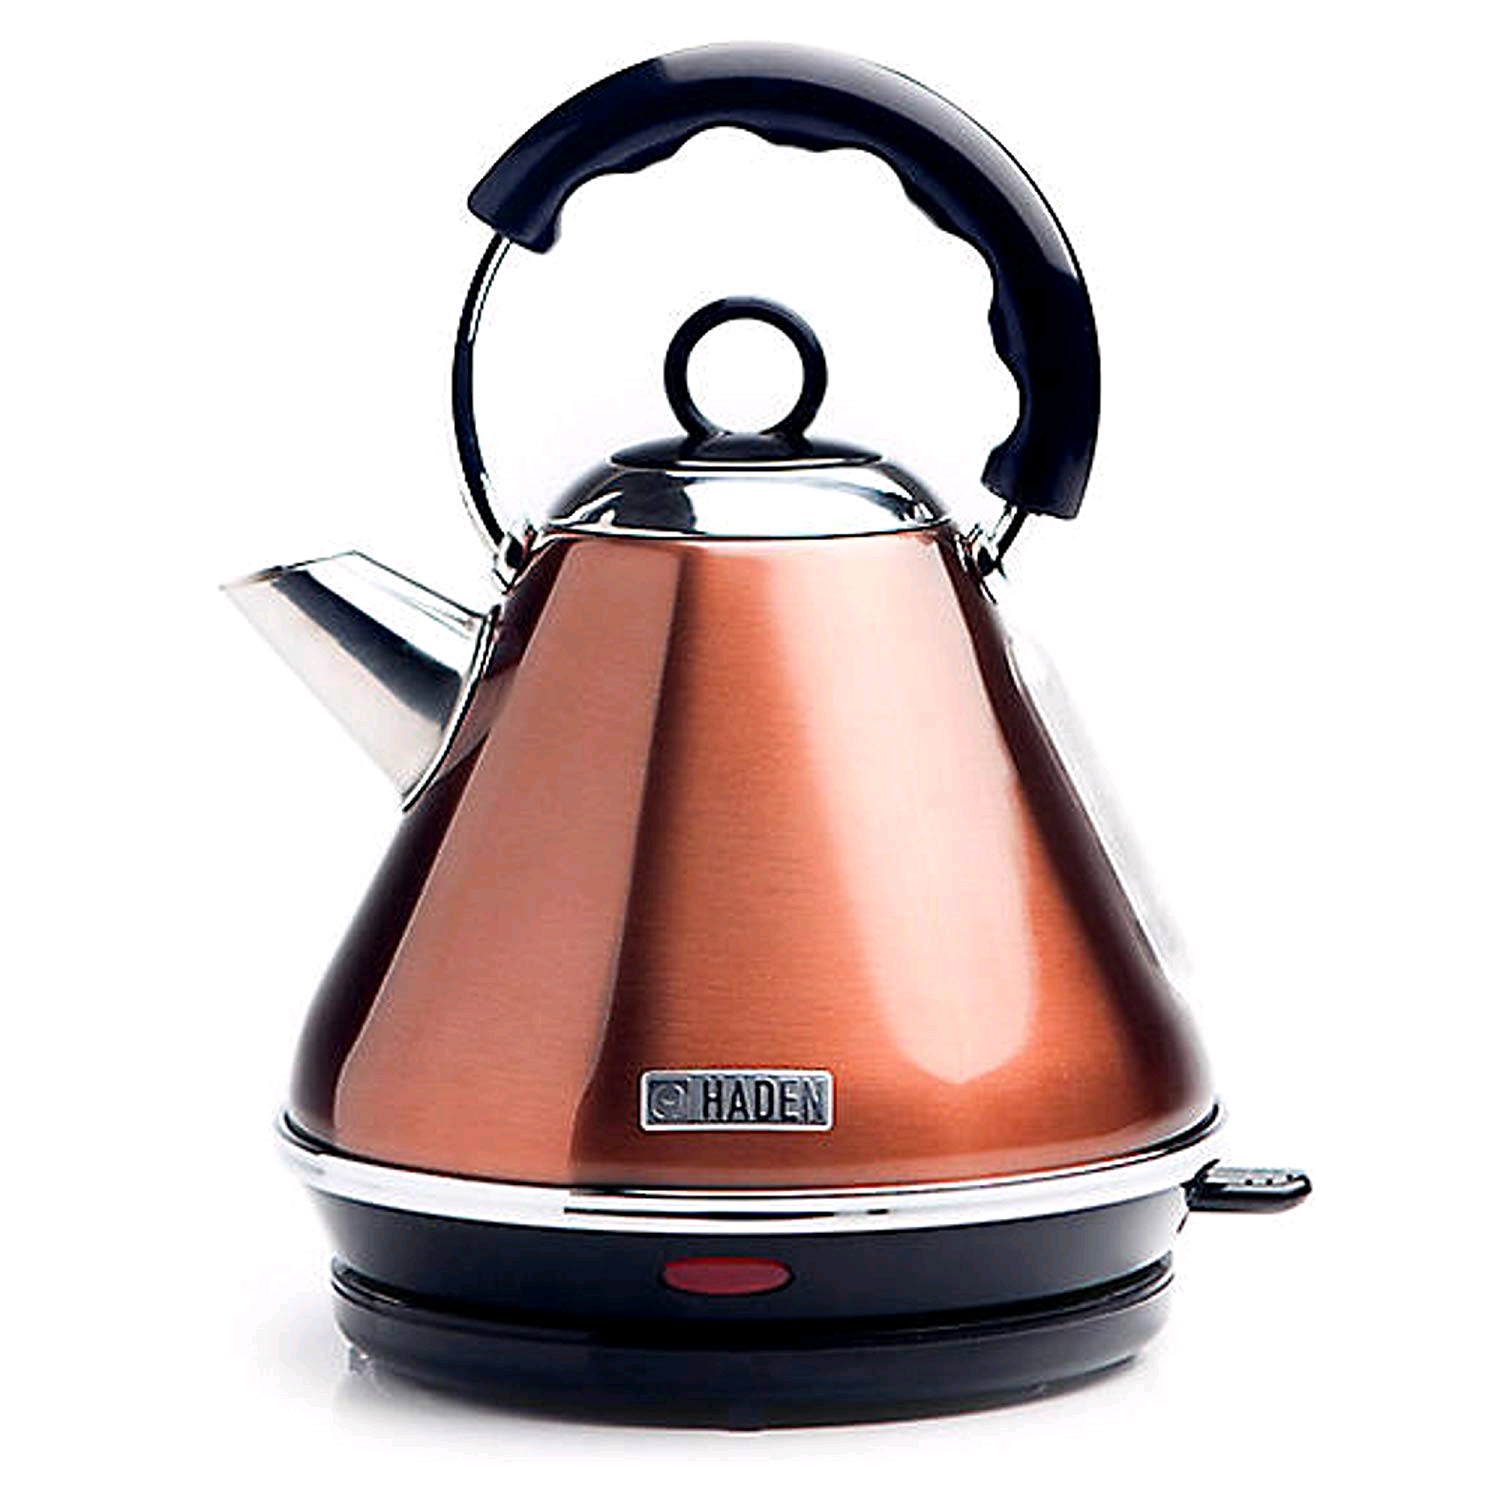 Haden 189721 Boston Pyramid CopperKettle 1.7Ltr 3KW